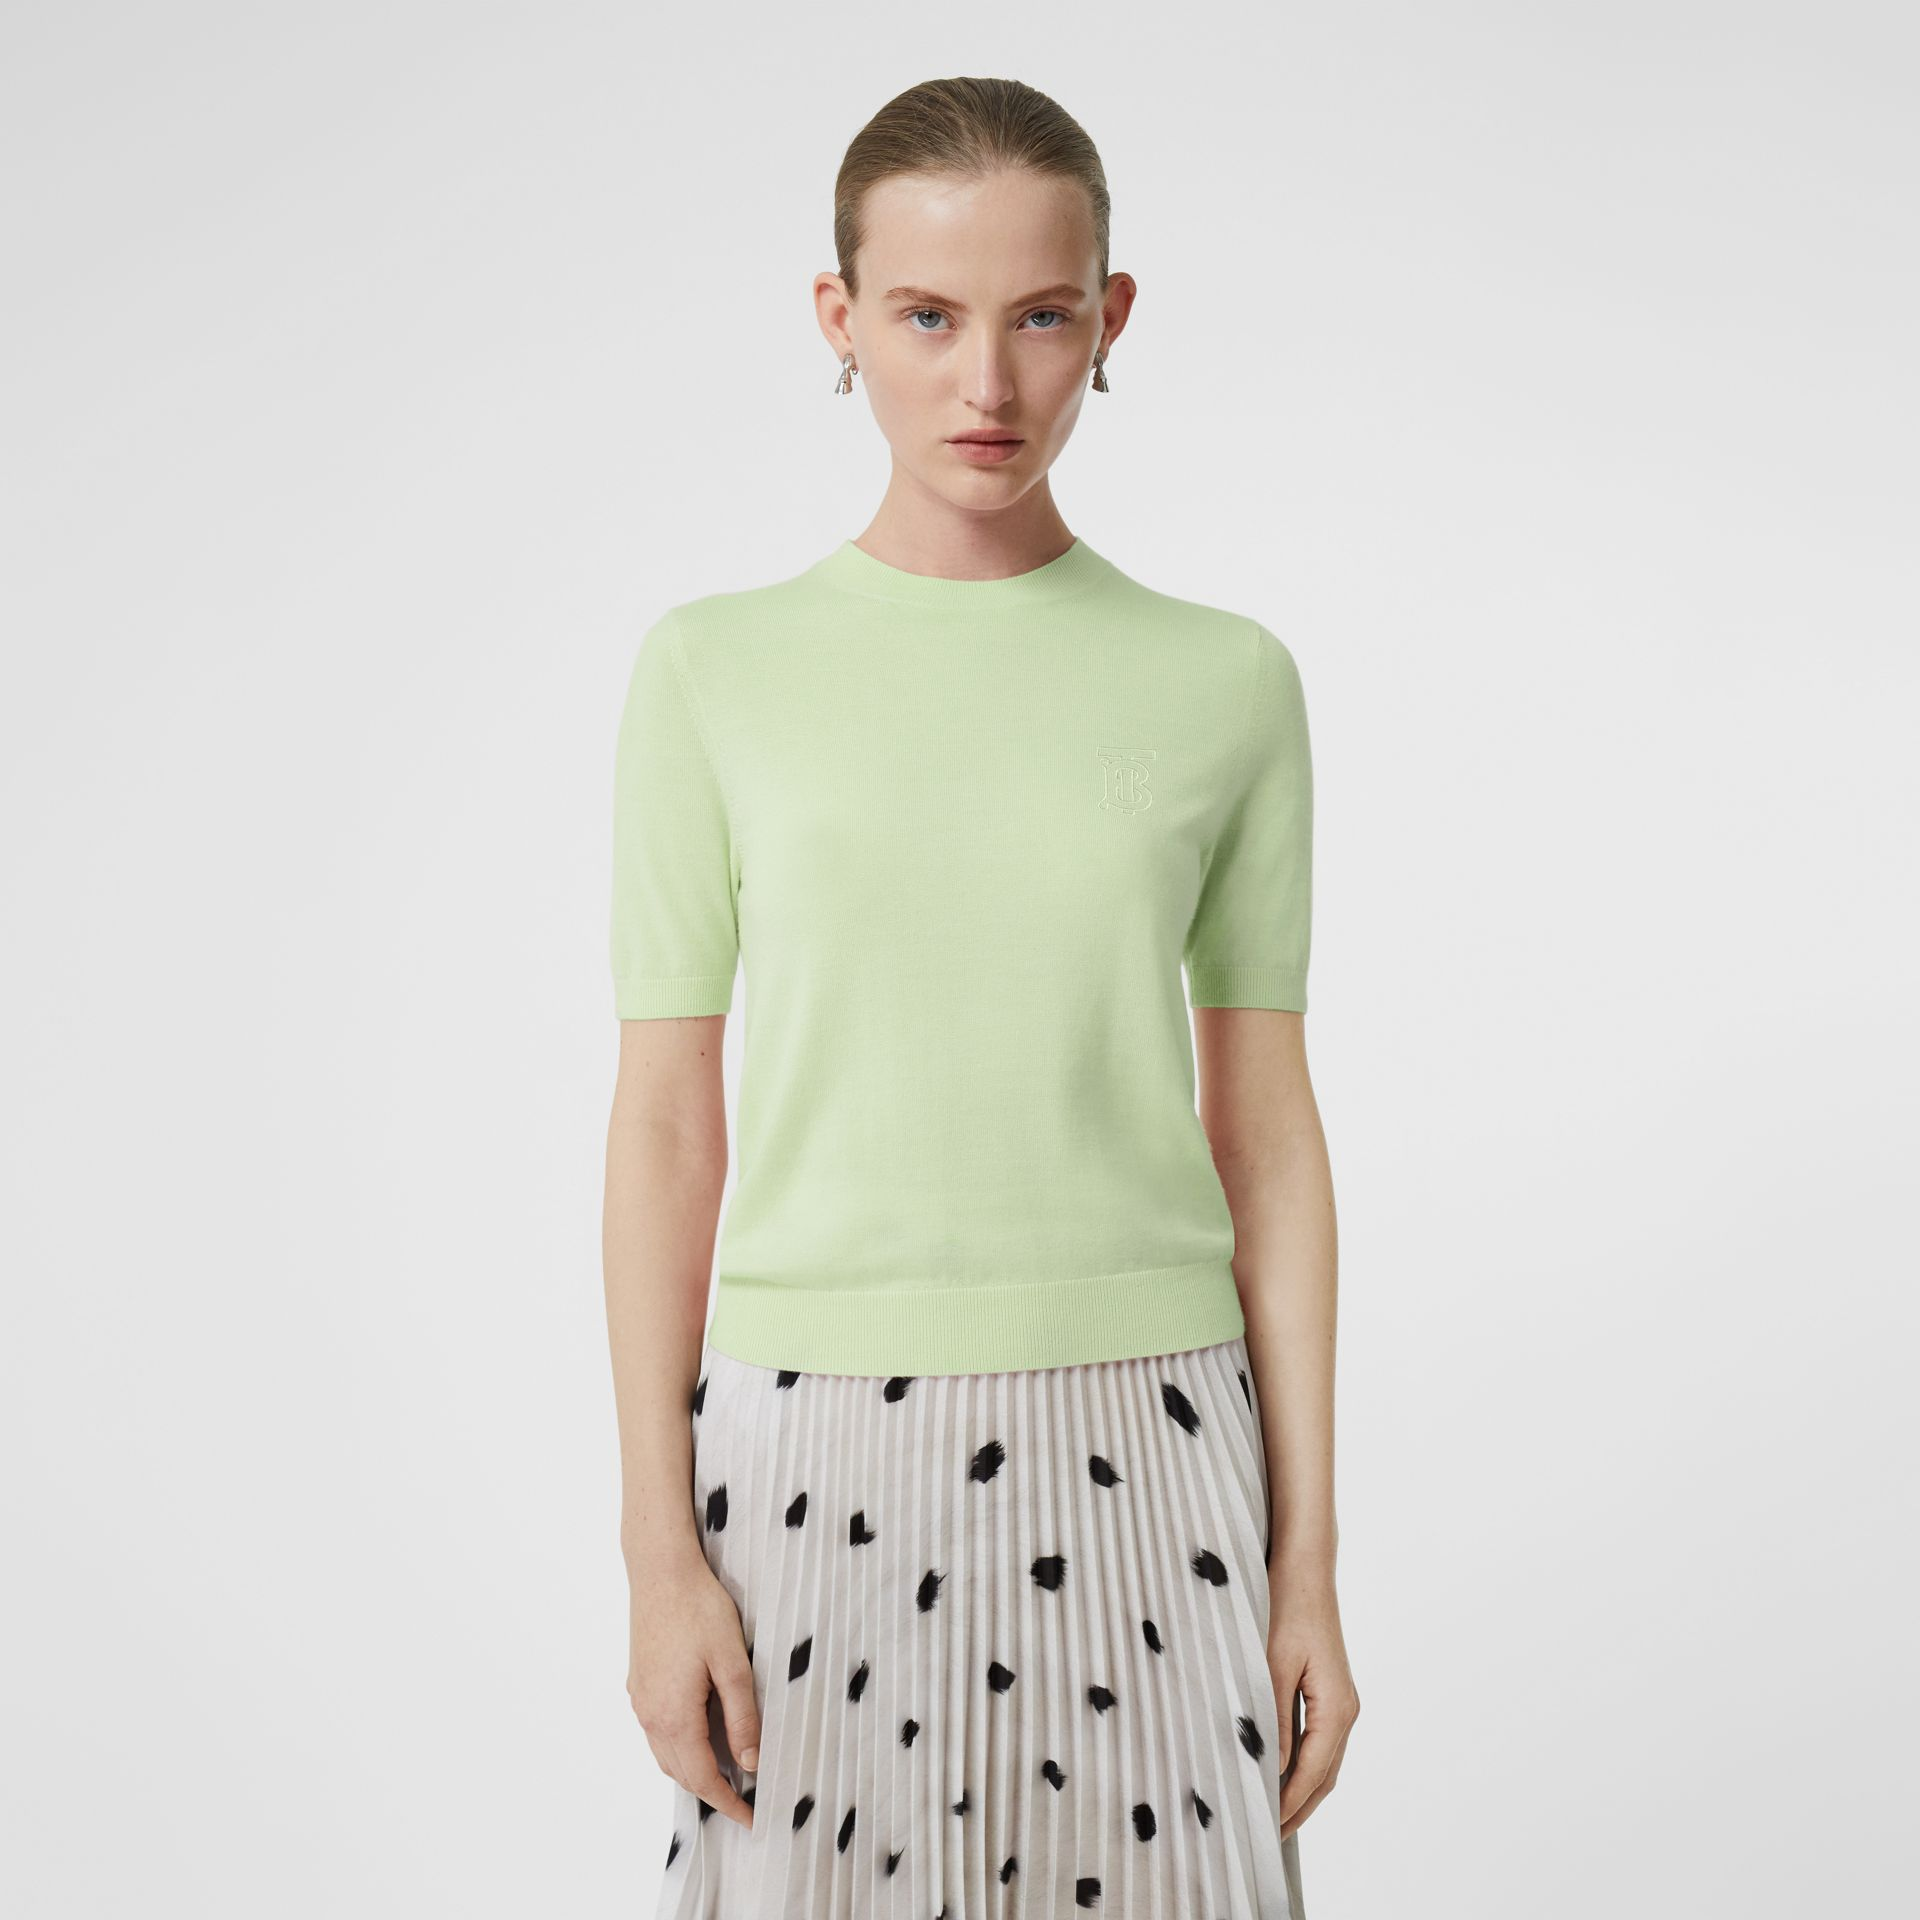 Monogram Motif Cashmere Top in Pistachio - Women | Burberry United Kingdom - gallery image 4